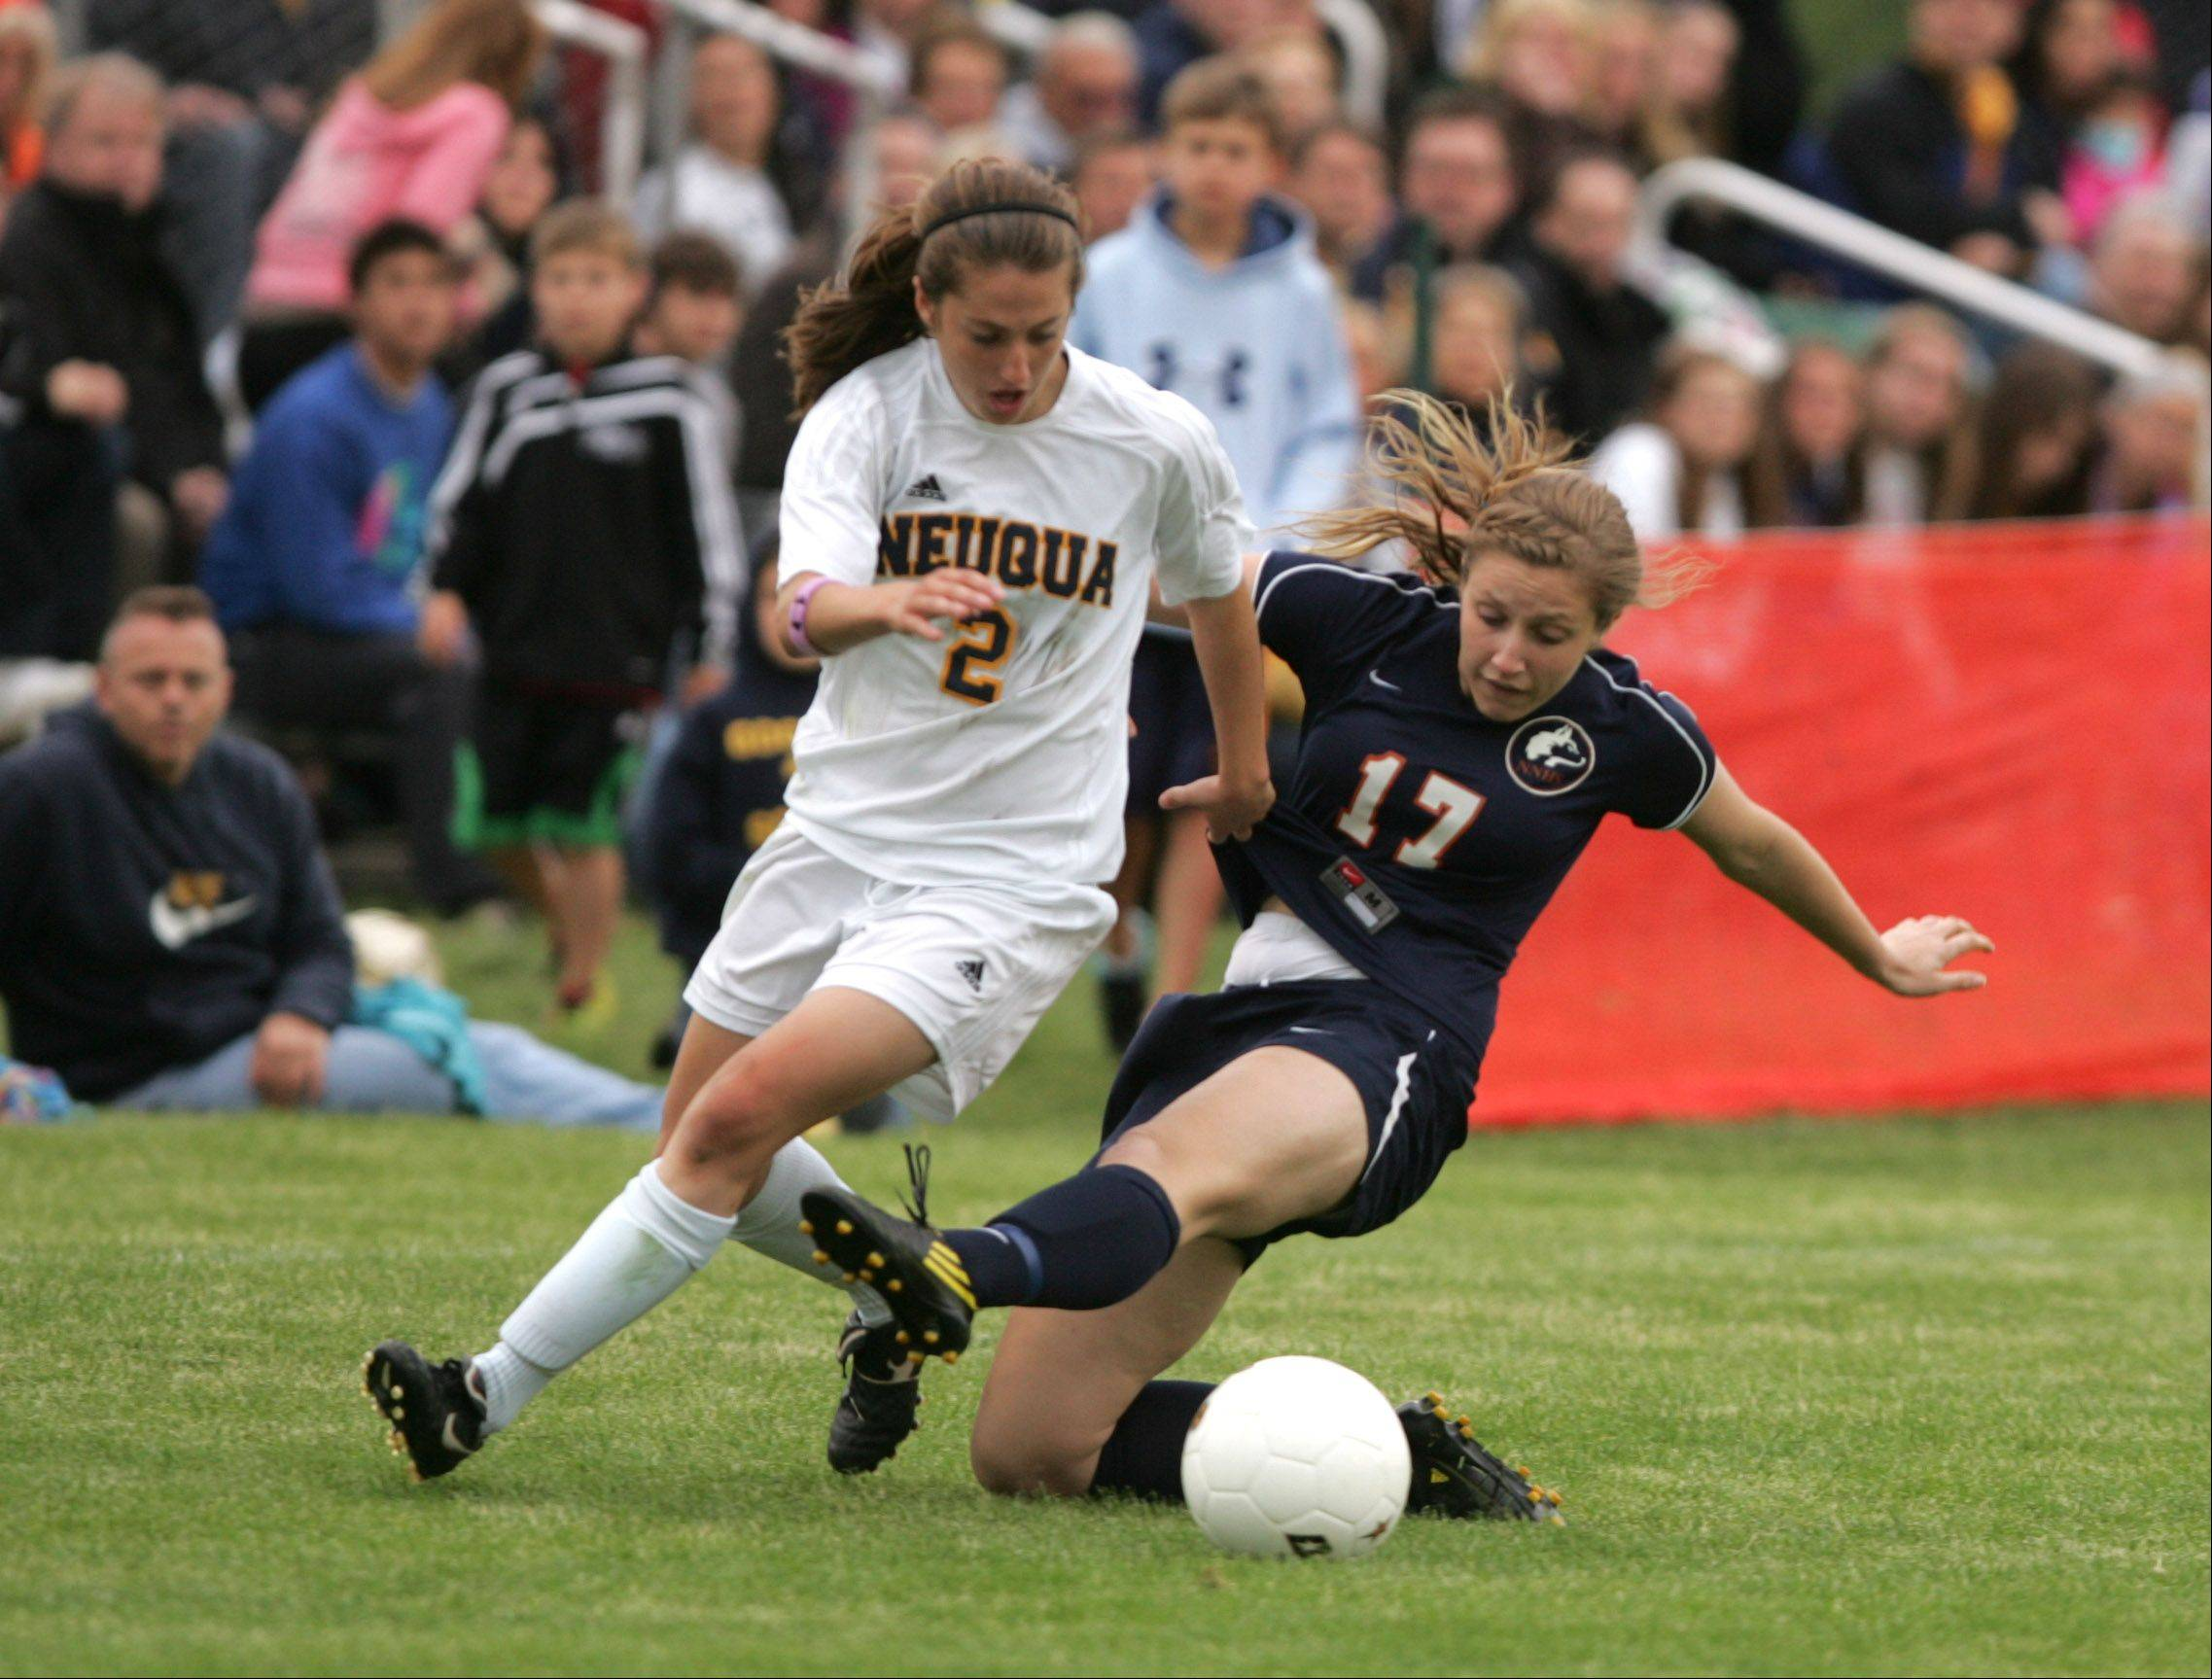 Neuqua Valley�s Zoey Goralski (2) will play soccer at UCLA next year.